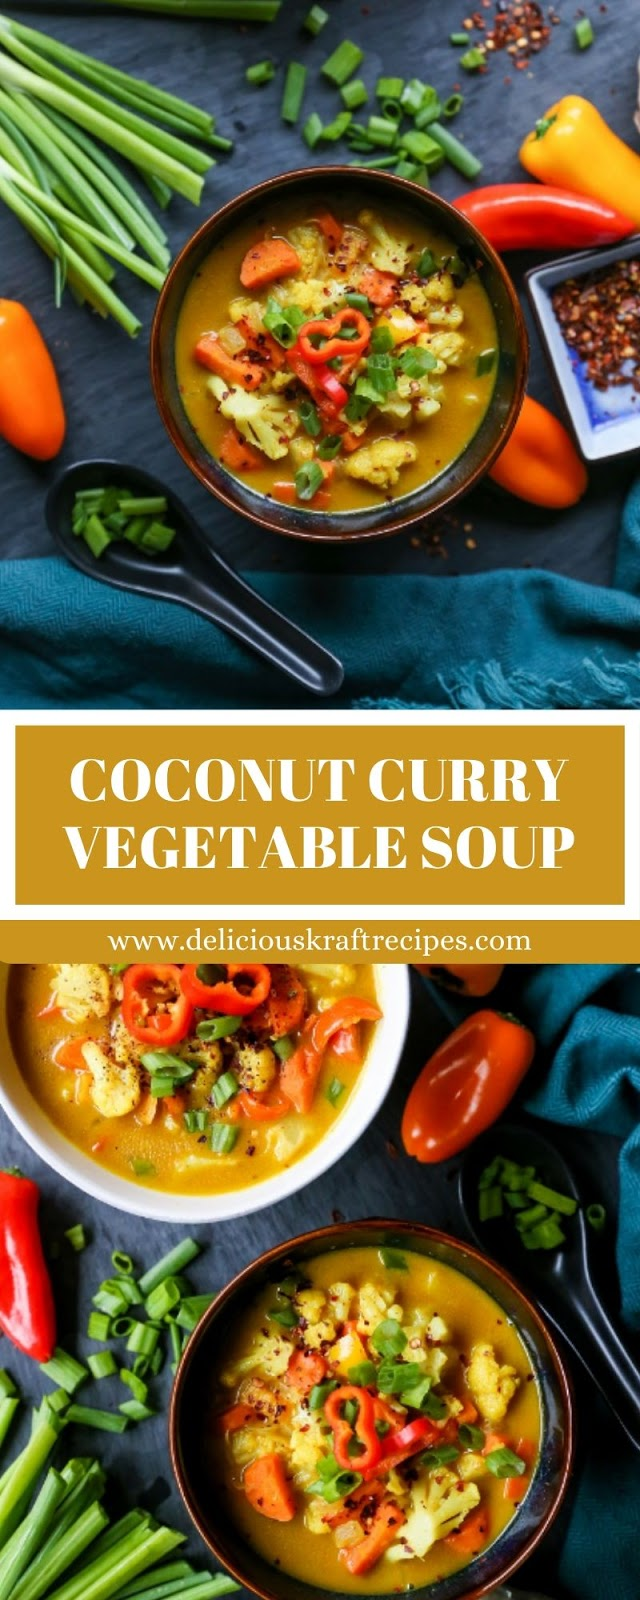 COCONUT CURRY VEGETABLE SOUP